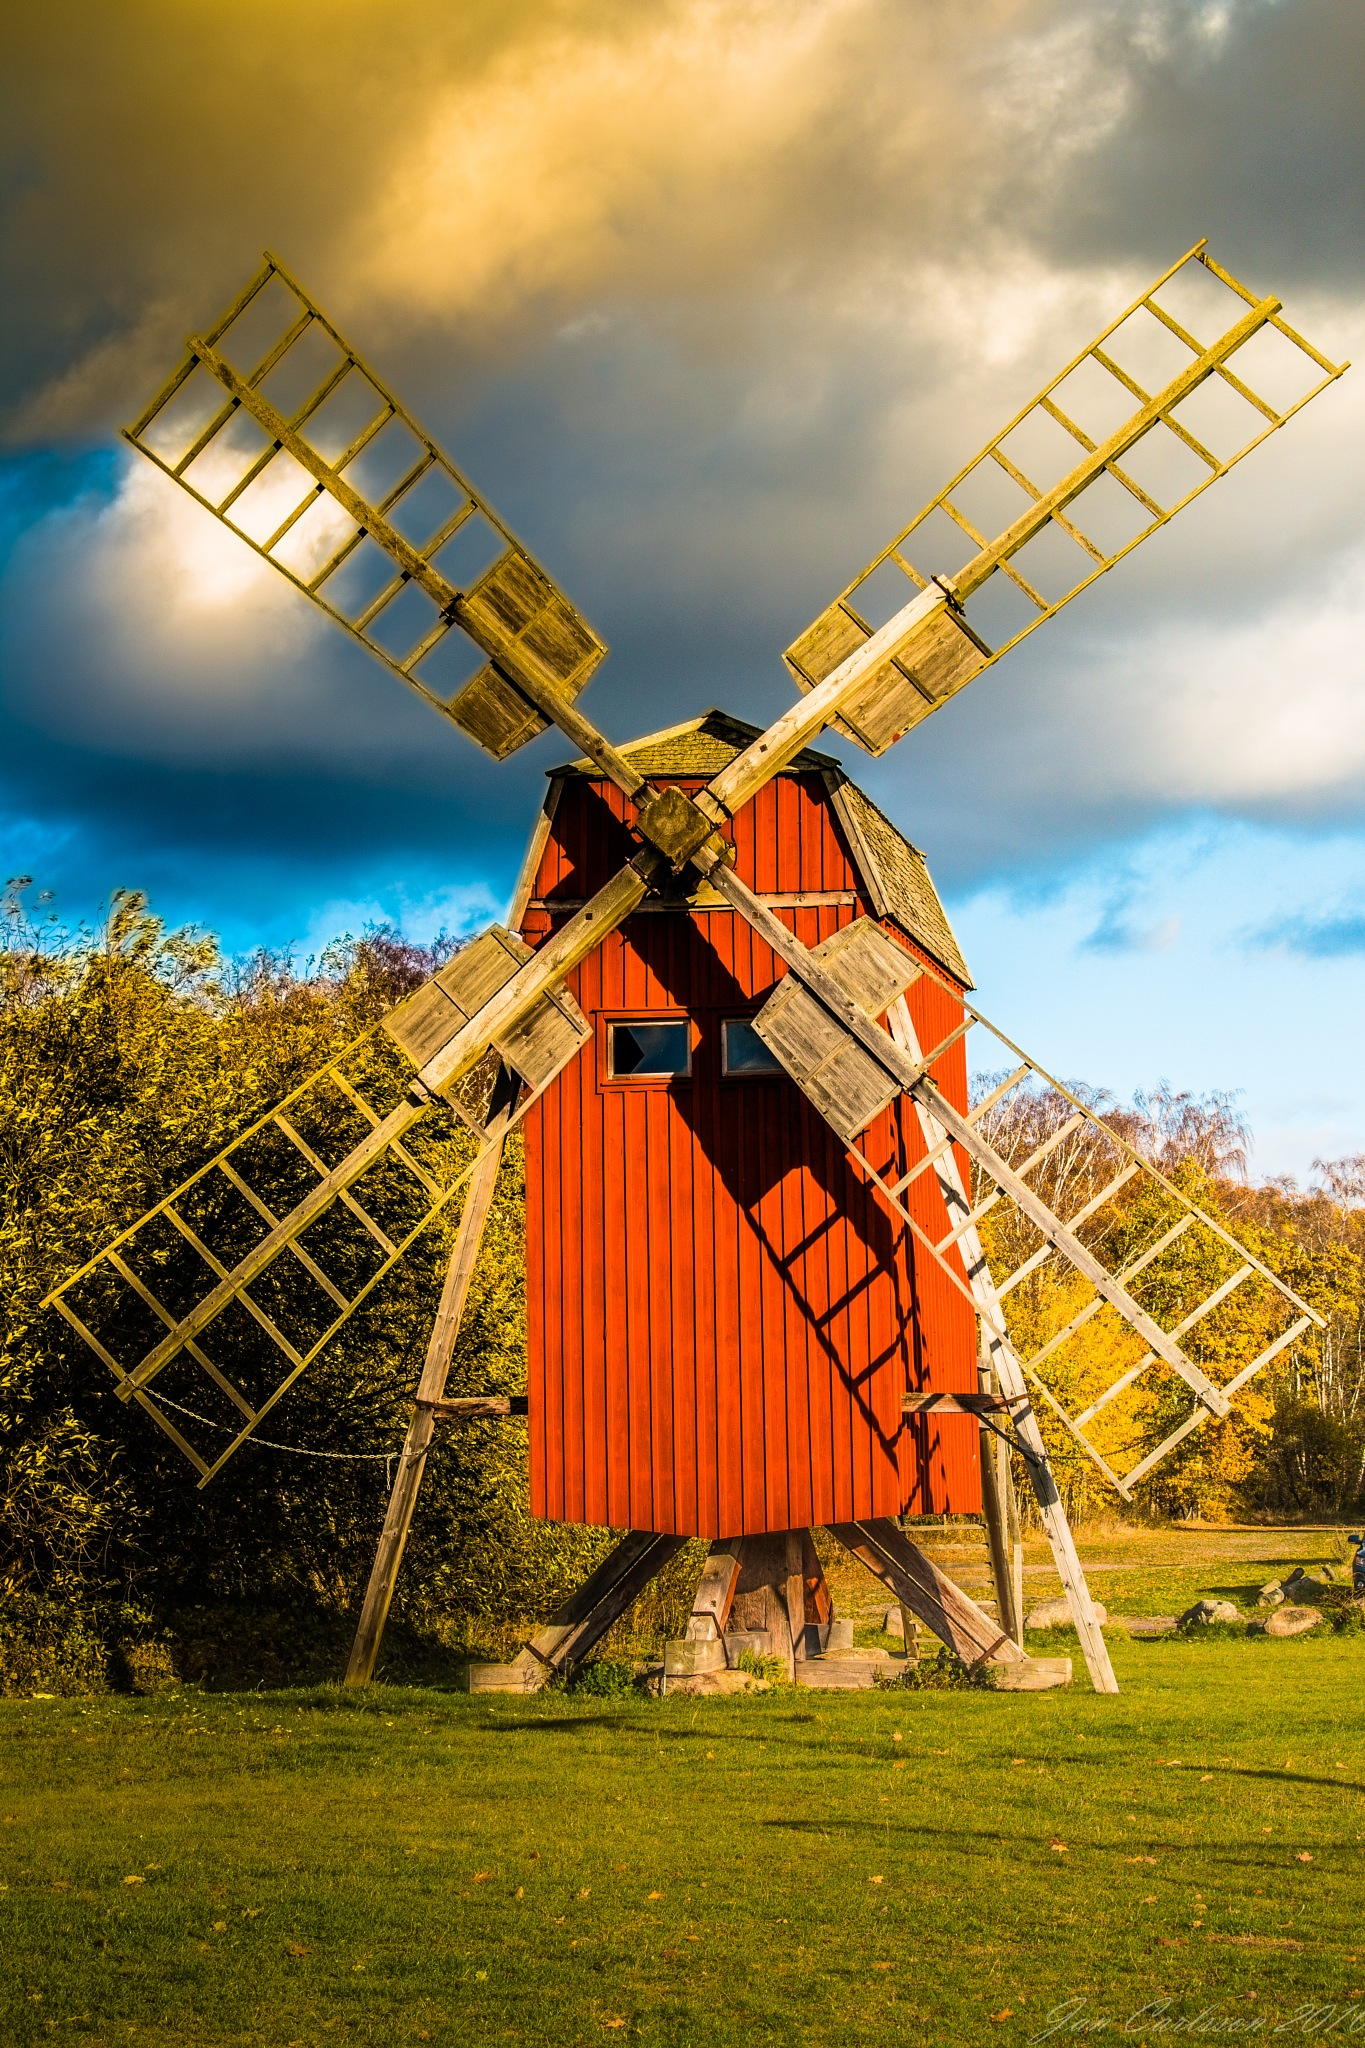 Old Wind Mill Dreaming About Stormy Days in the Past by carljan w carlsson